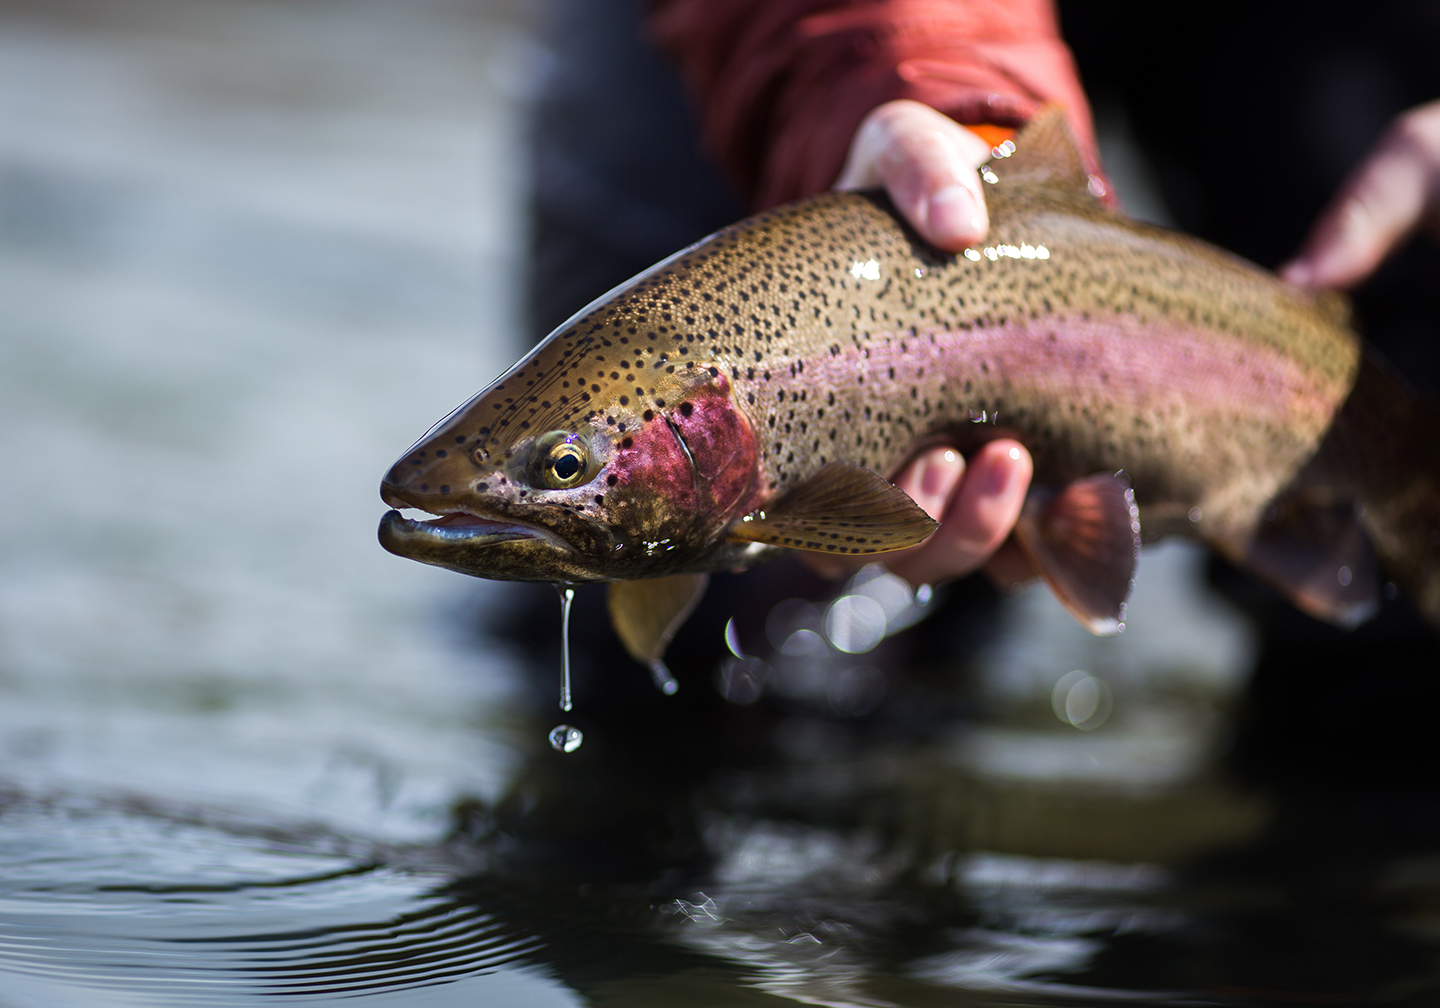 A Rainbow trout being held just out of the water before being released.